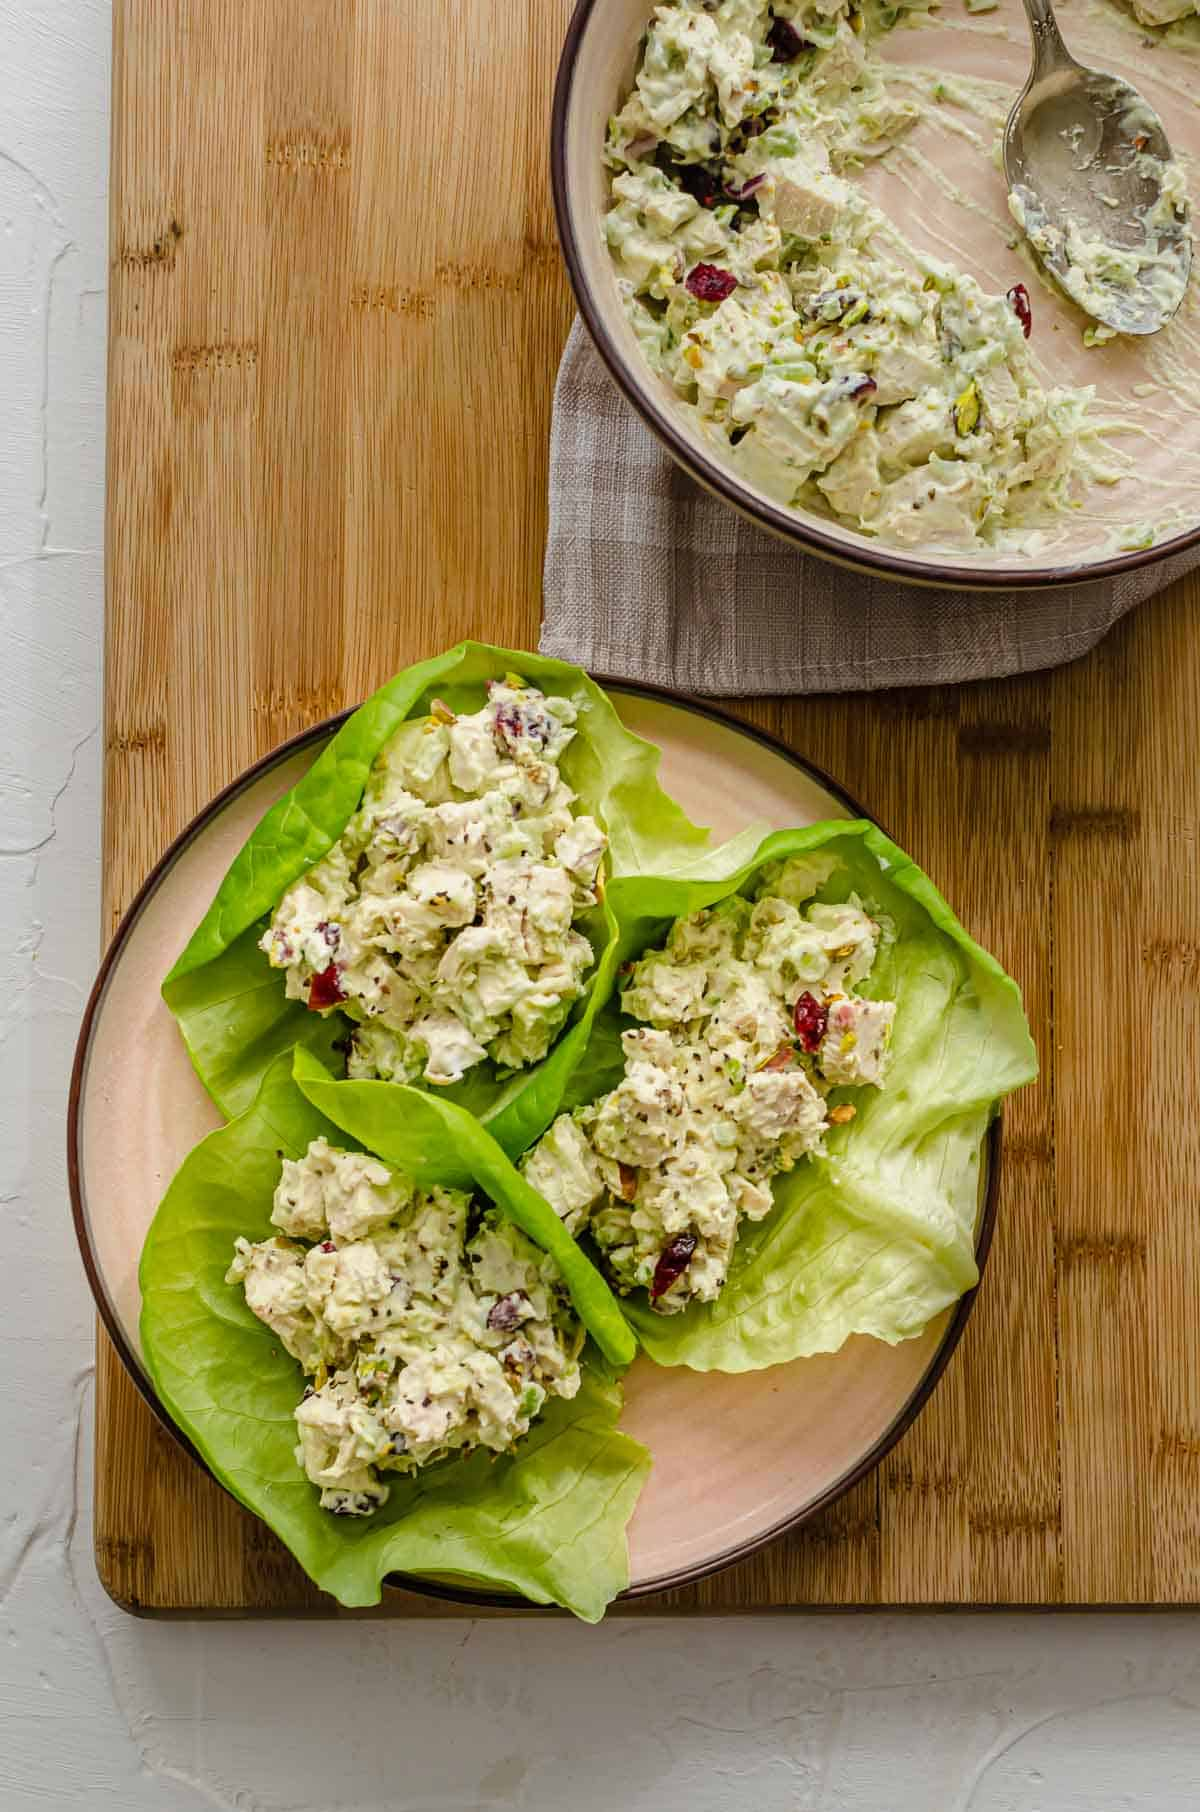 Birds eye view of chicken salad in a lettuce cup.